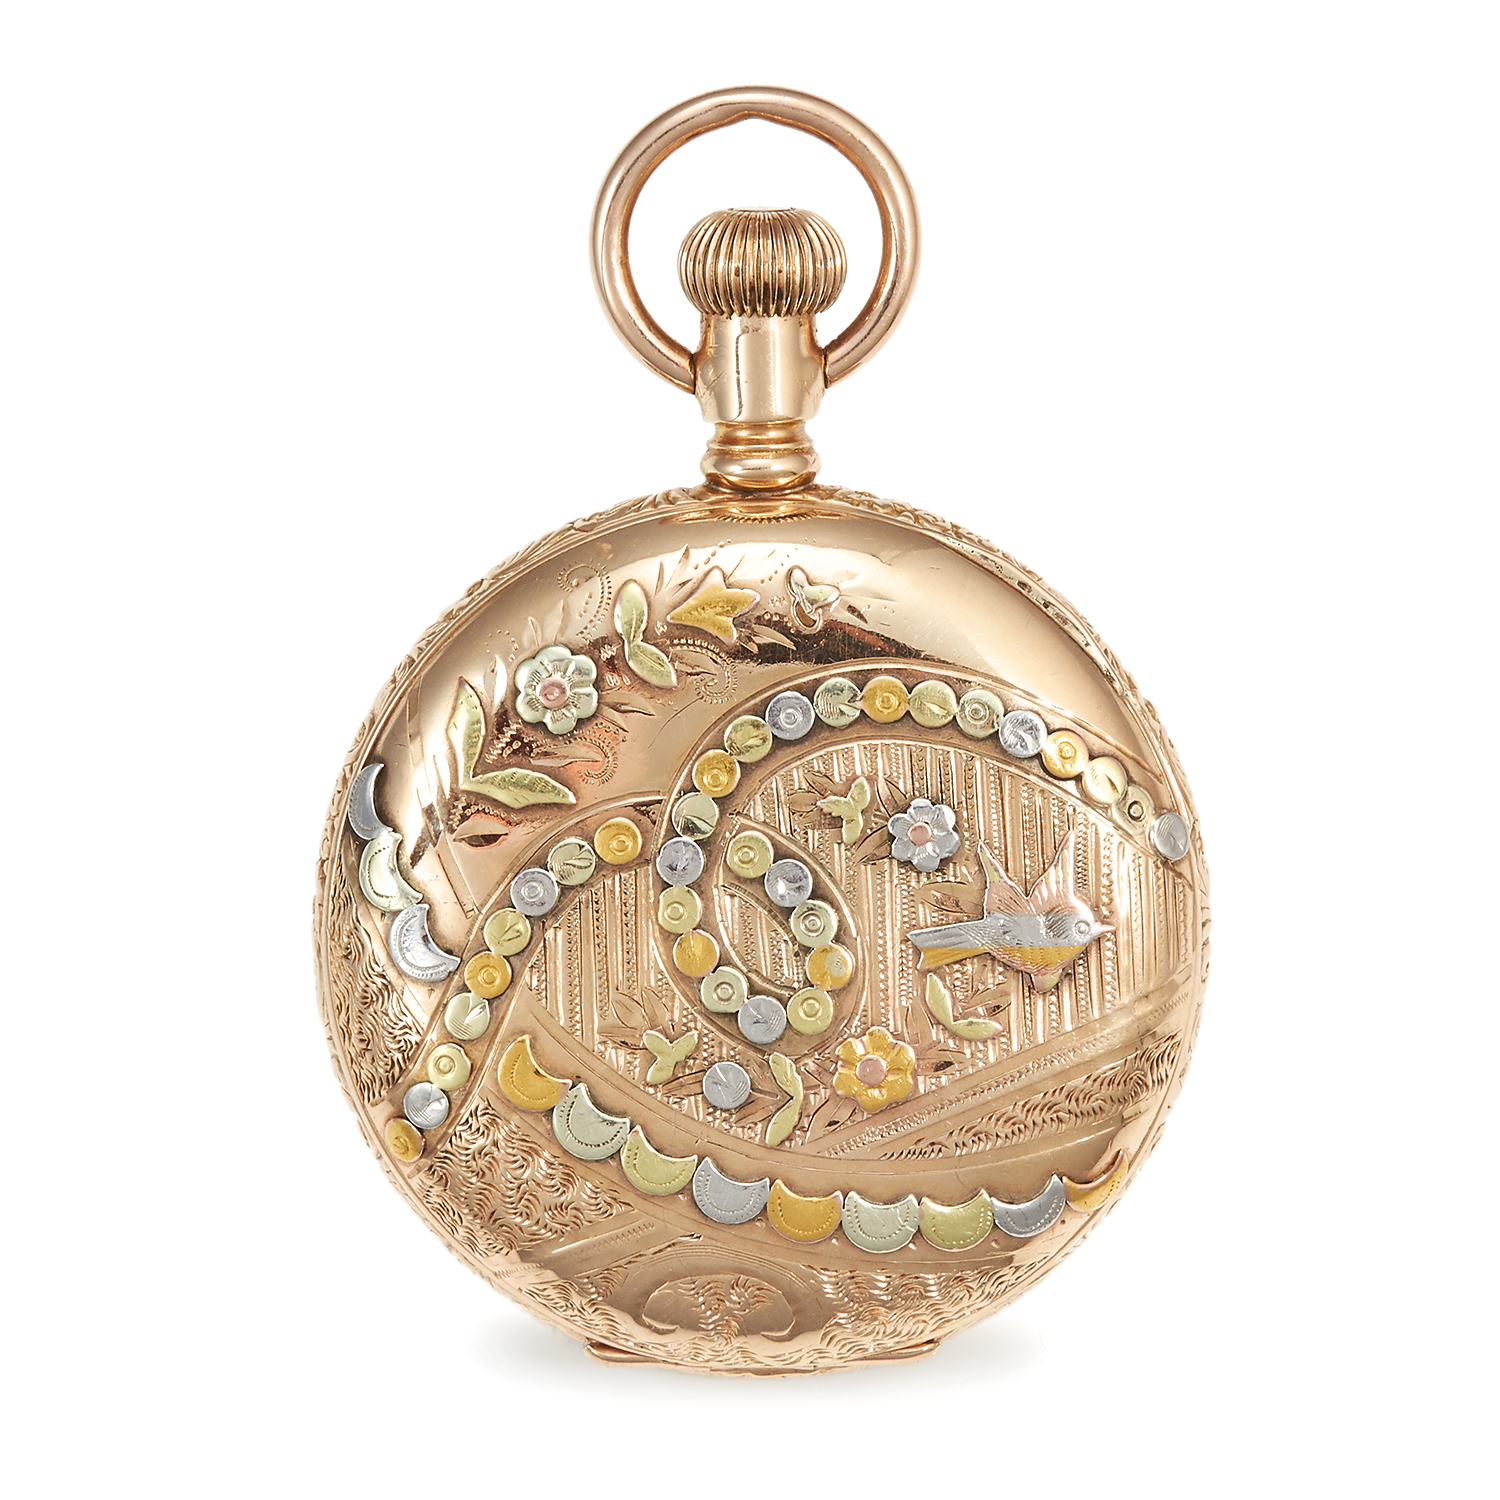 AN ANTIQUE POCKET WATCH, WALTHAM in 14ct gold, the circular case decorated with varicoloured gold